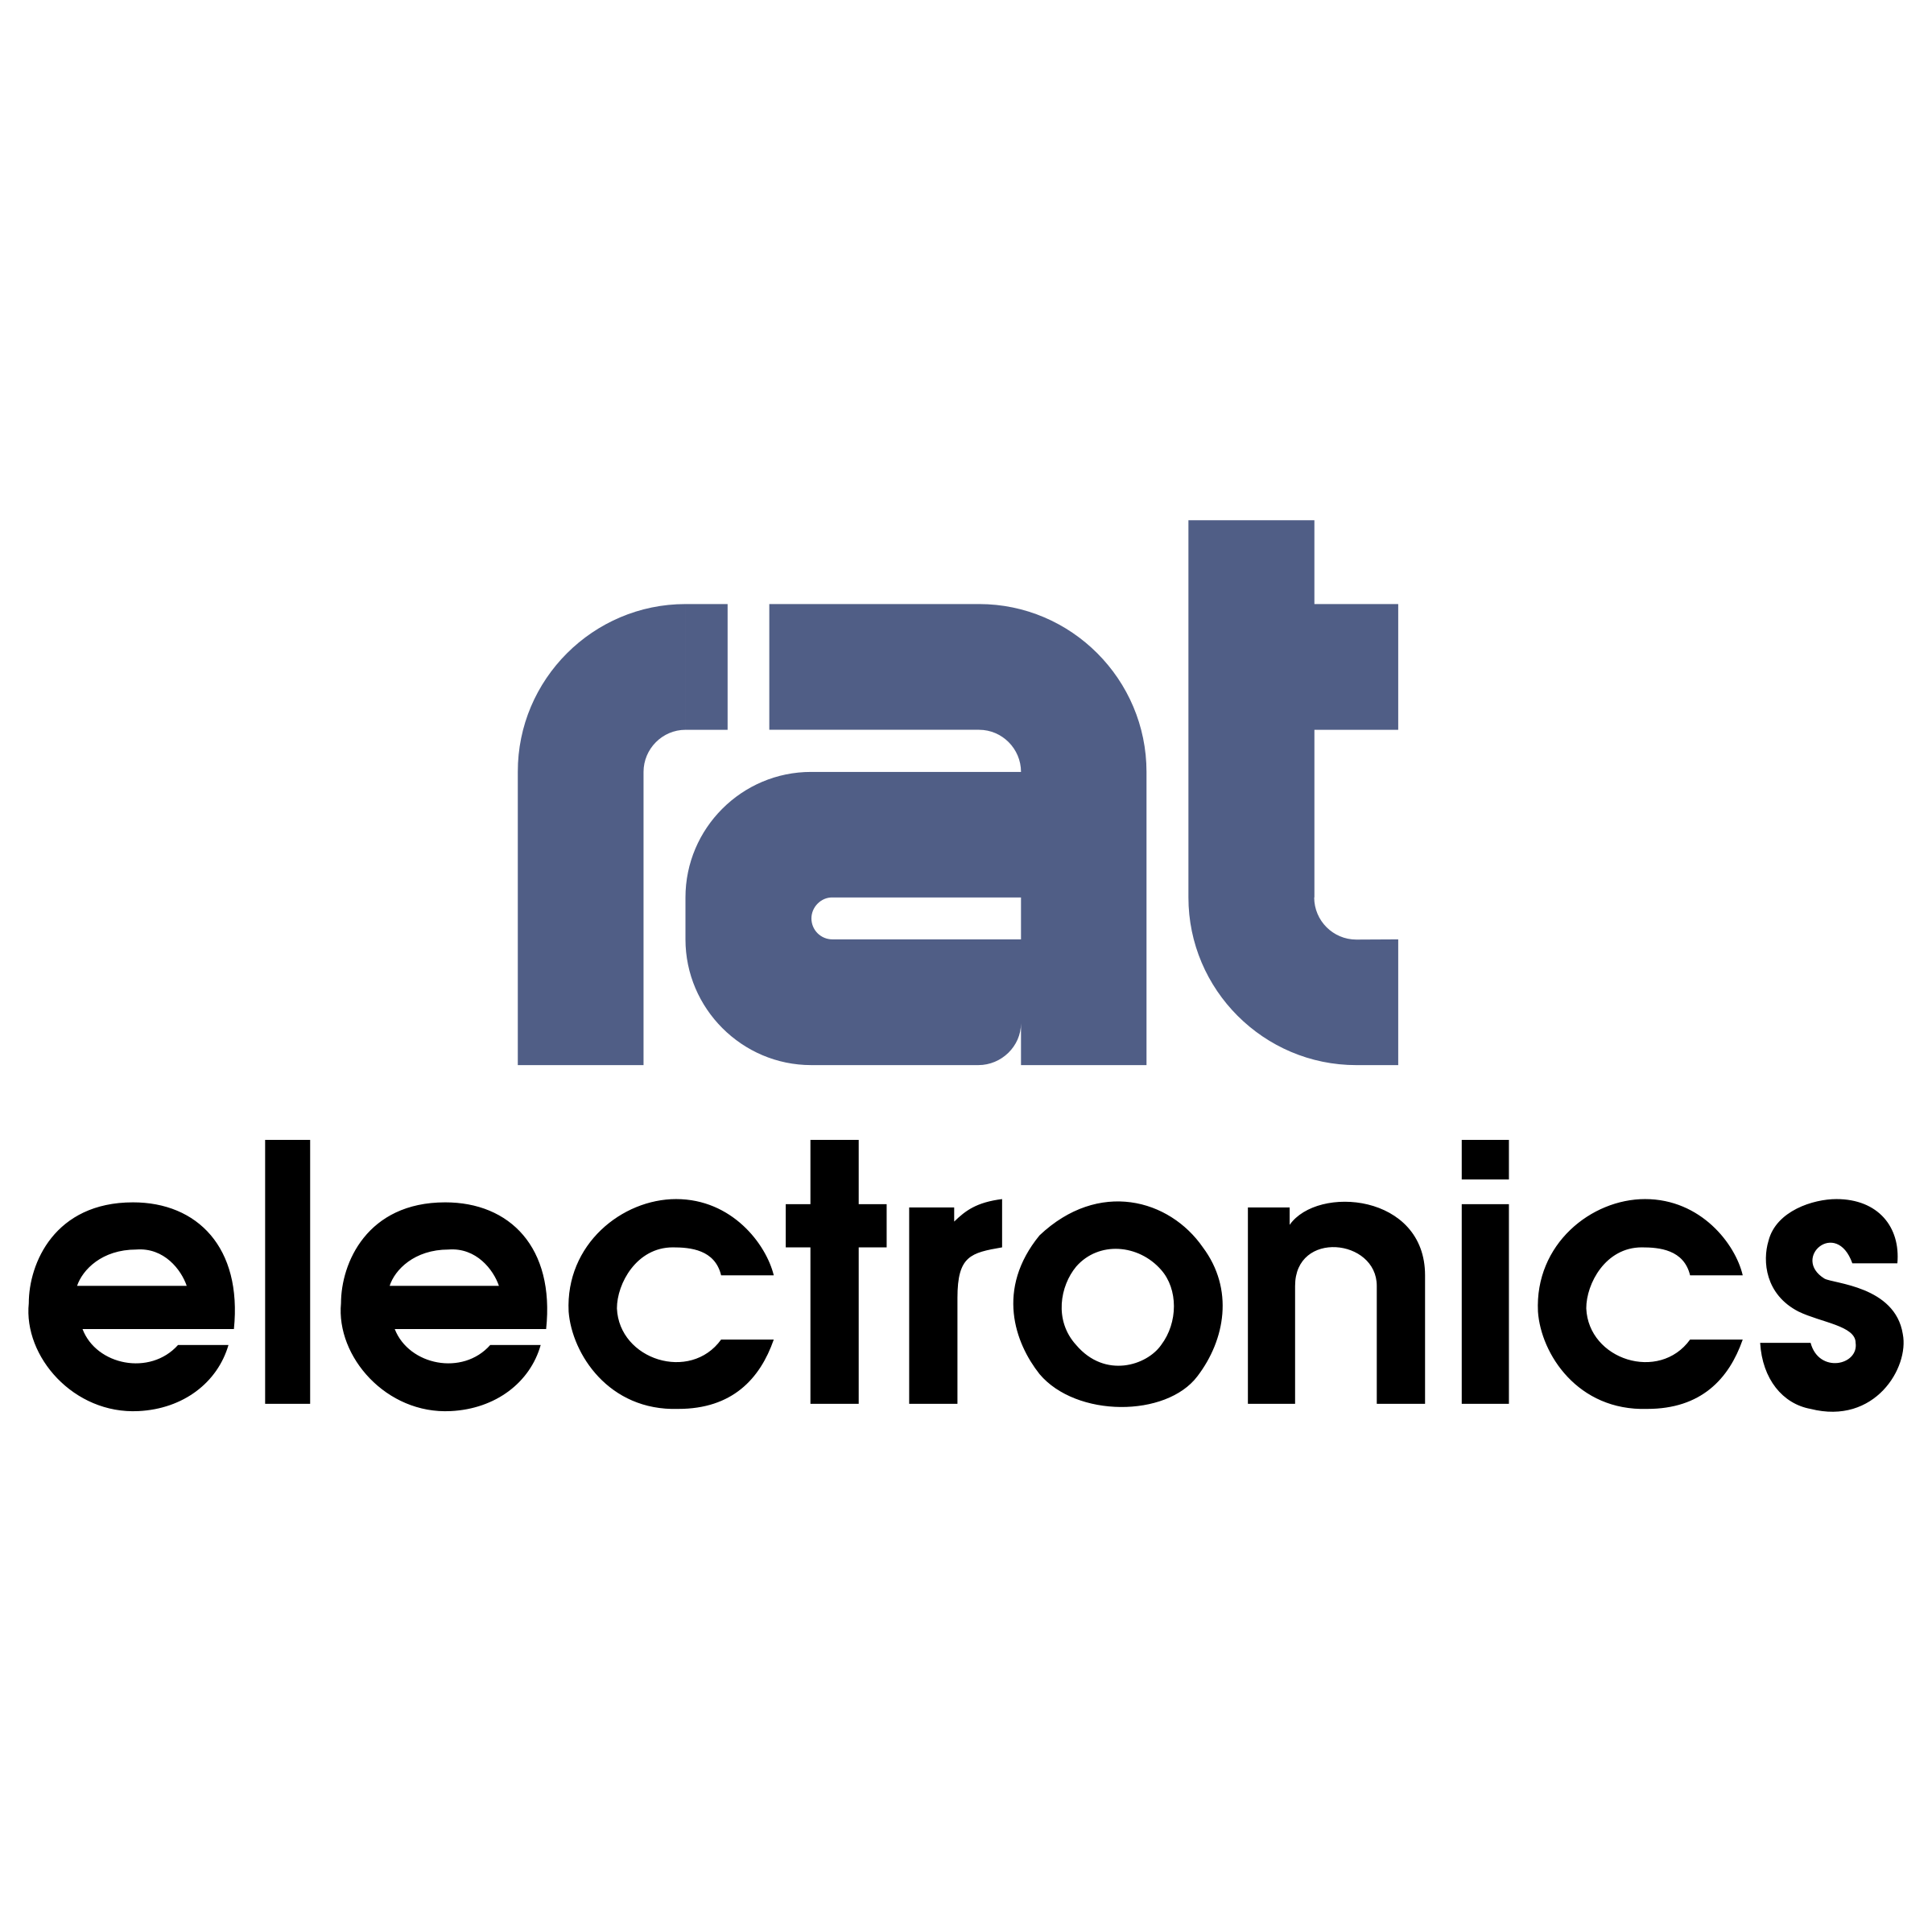 rat electronics logo png transparent svg vector freebie supply rh freebiesupply com logos for electronics and communication engineering logos for electronic repair and resale